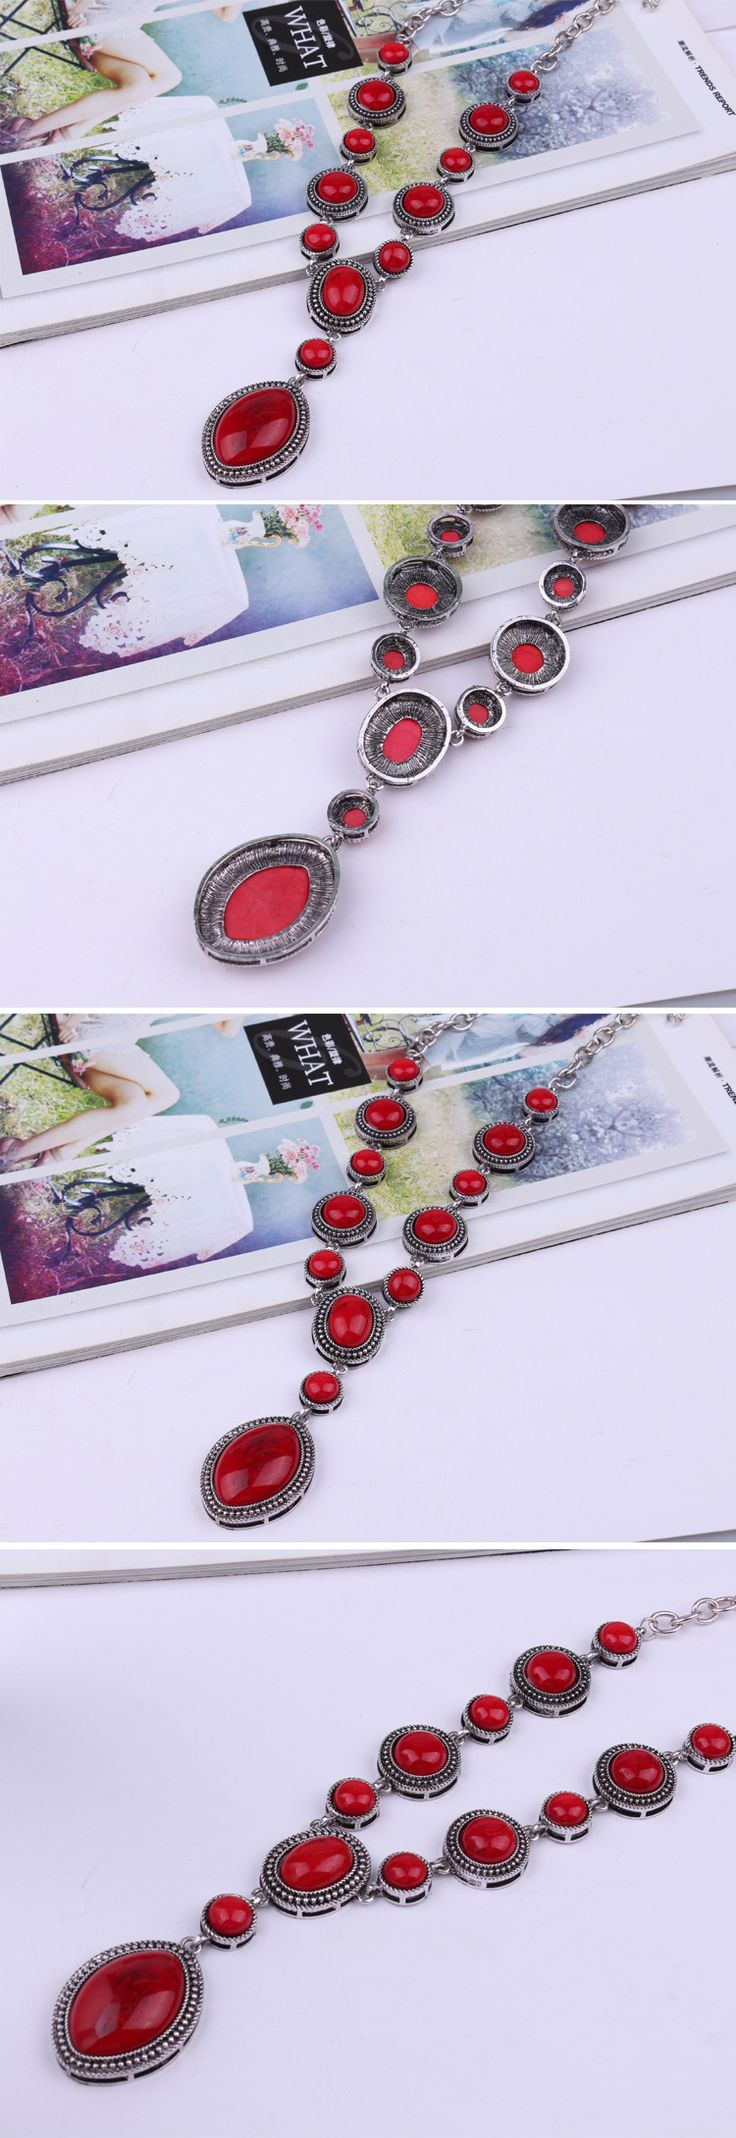 Occident and the United States alloy plating necklace (Photo Color)NHKQ0972-Photo Color